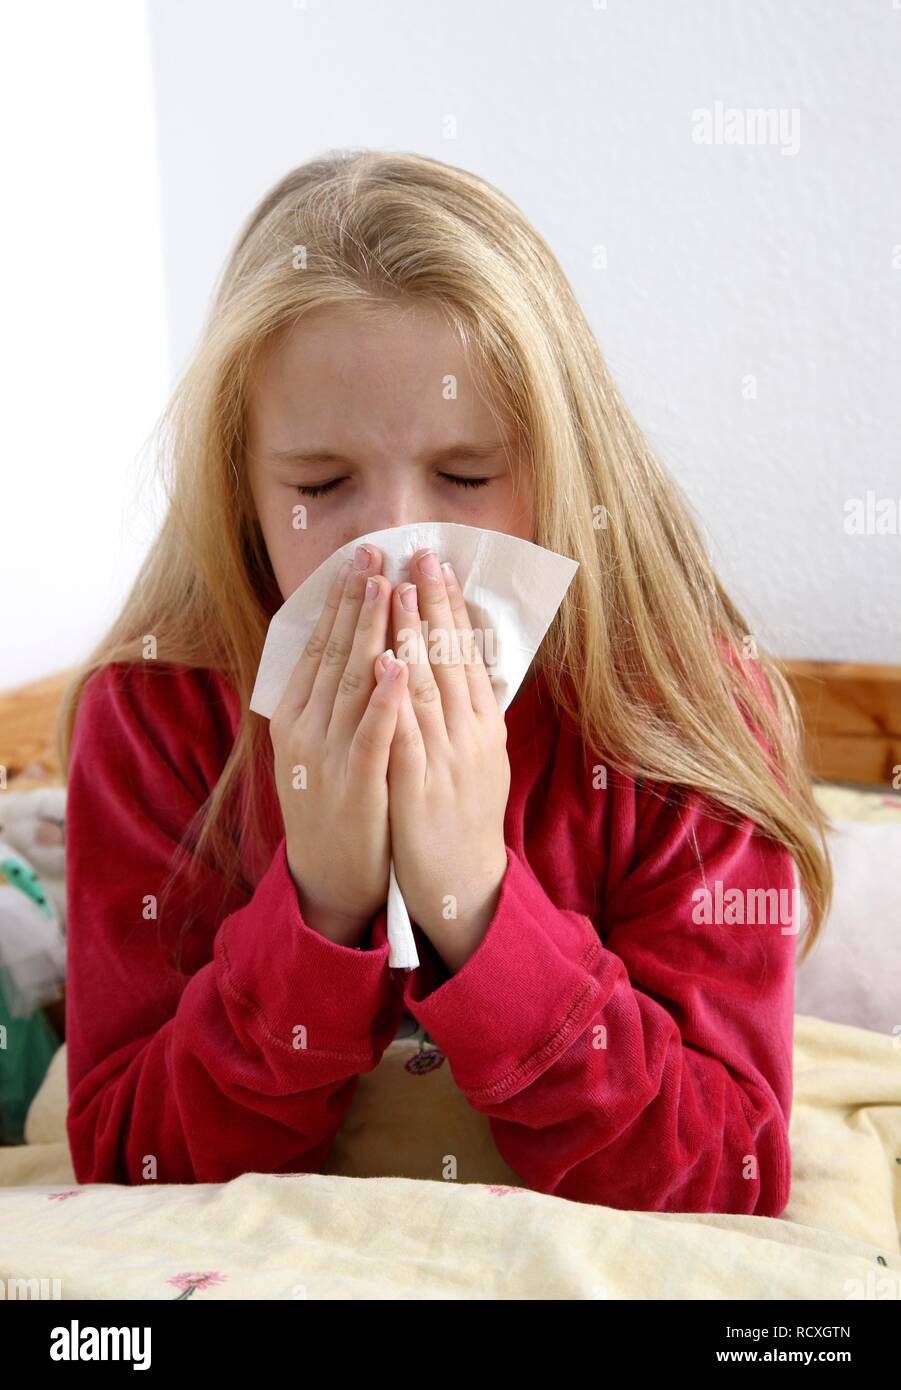 Girl, 10 years old, with a cold, flu, fever, blowing her nose - Stock Image